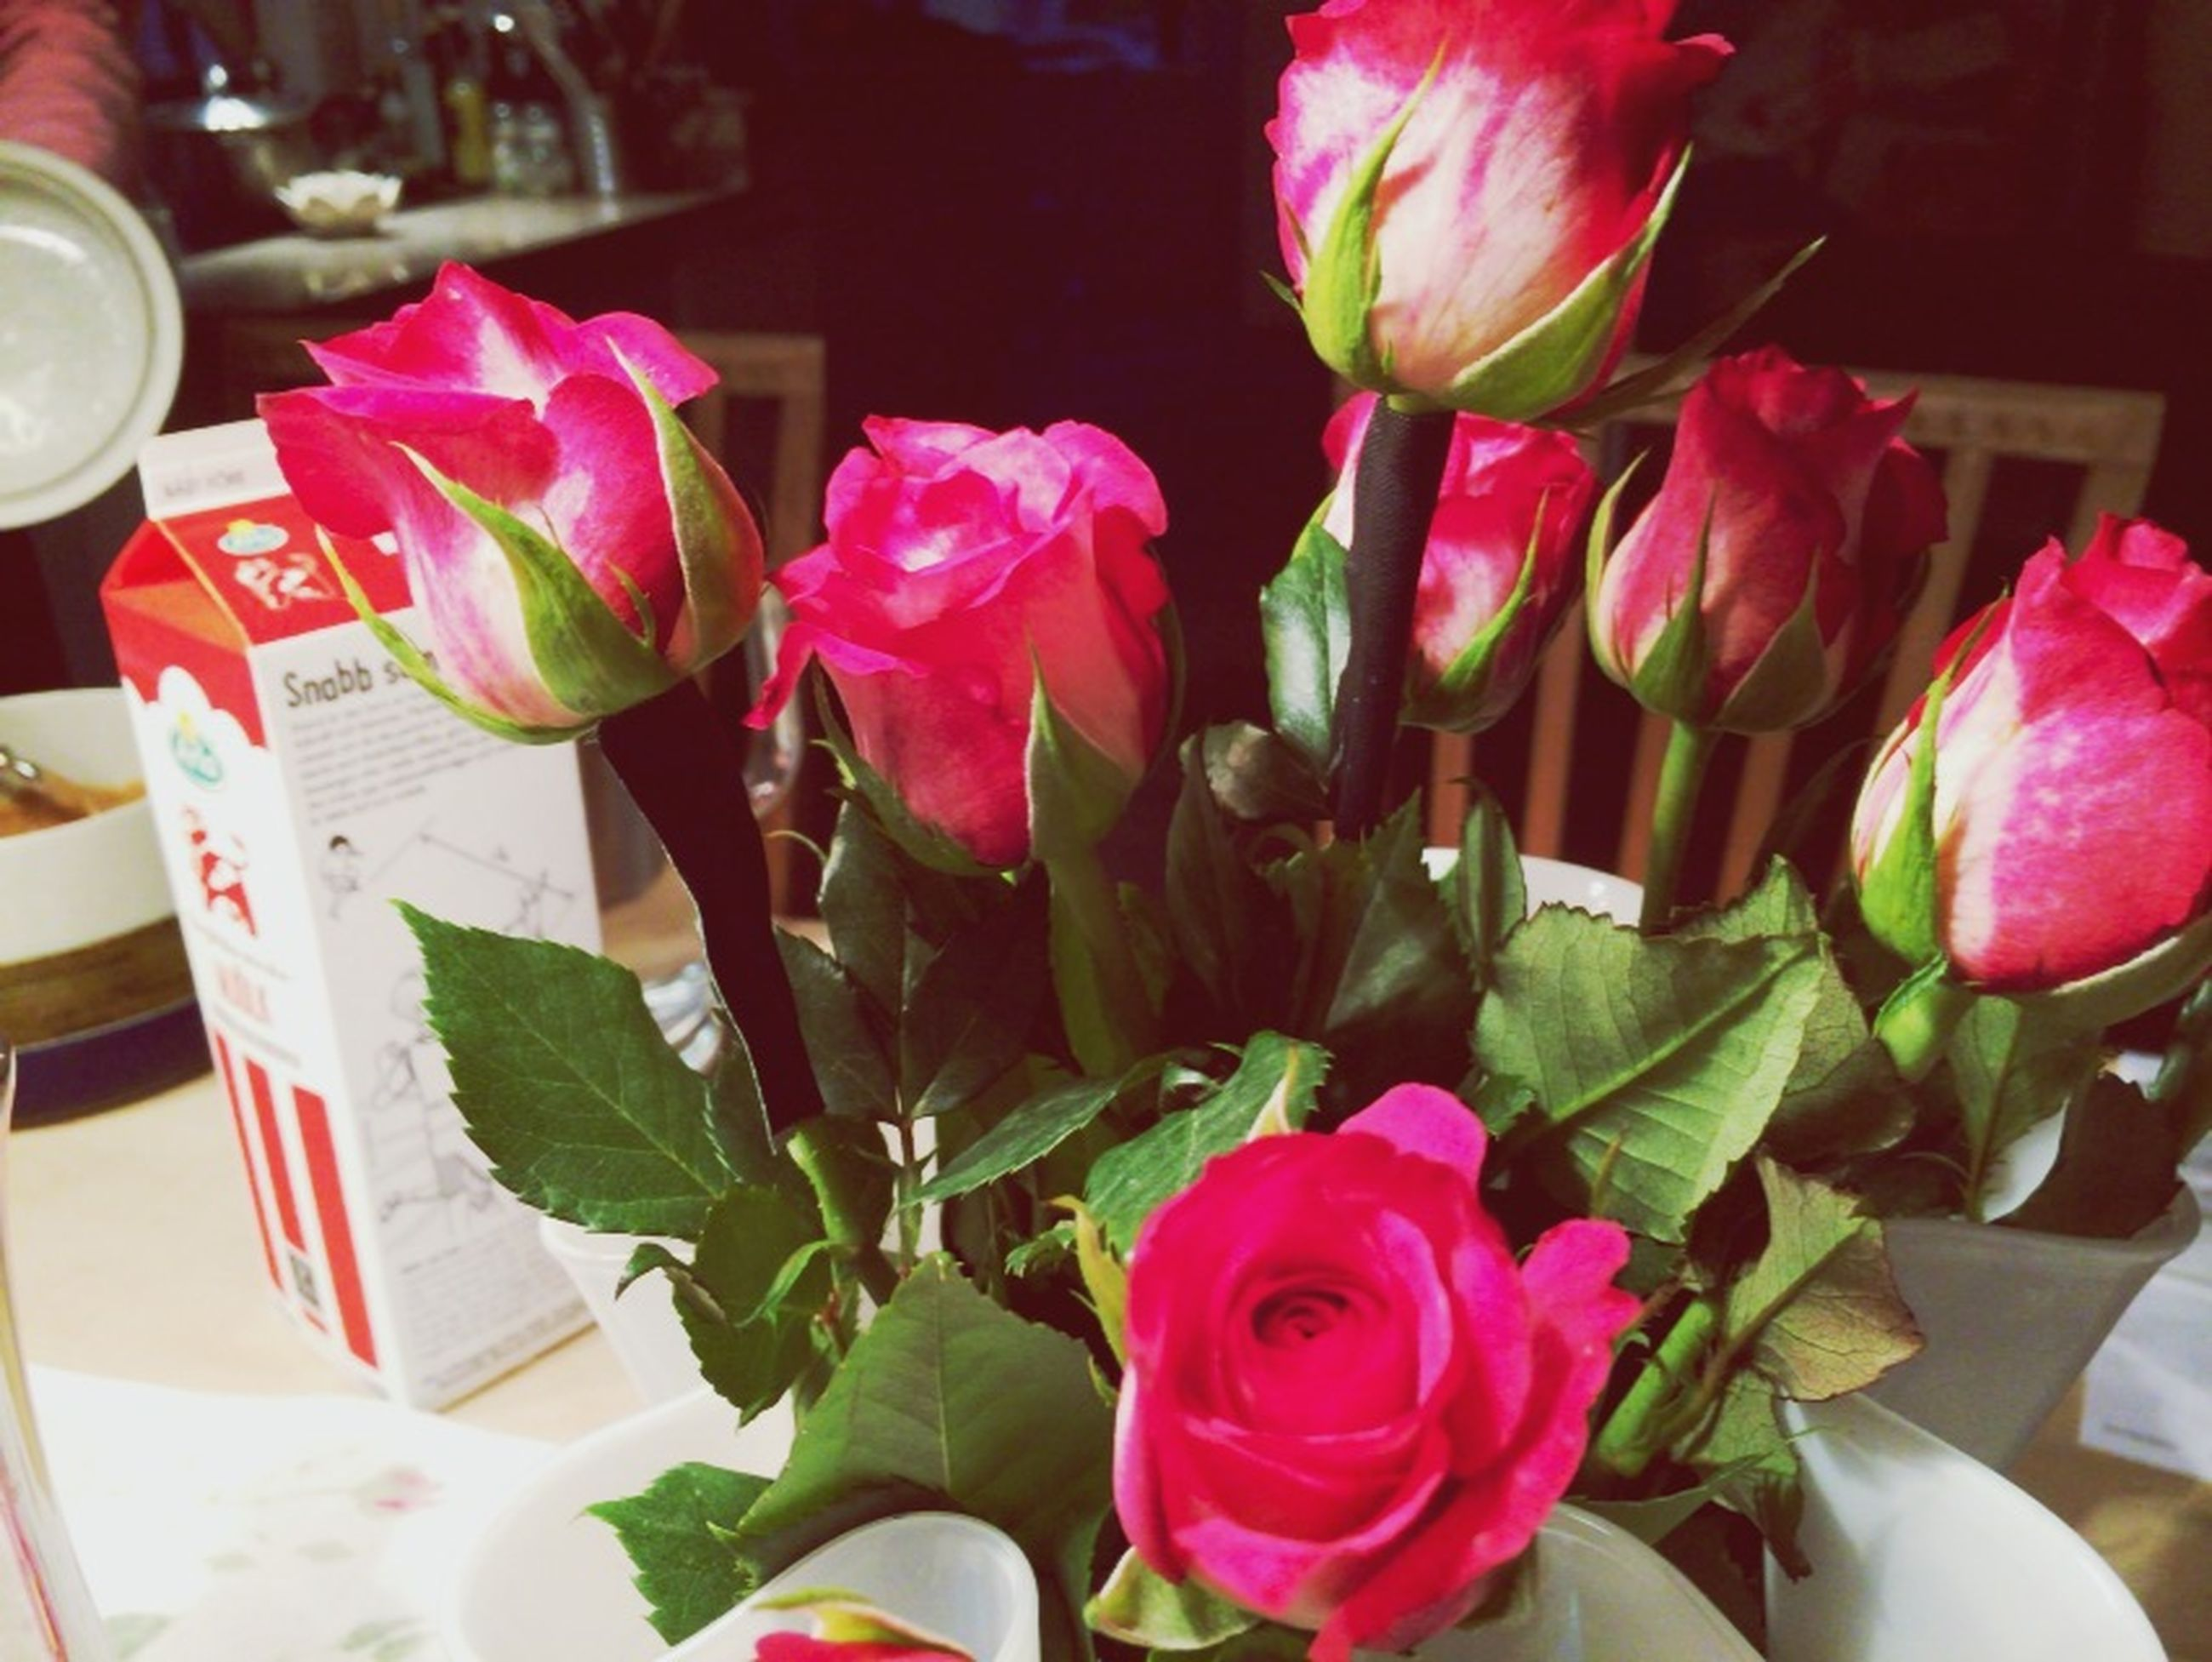 flower, freshness, petal, pink color, indoors, fragility, flower head, close-up, beauty in nature, vase, rose - flower, growth, table, bouquet, nature, pink, flower arrangement, bunch of flowers, focus on foreground, plant